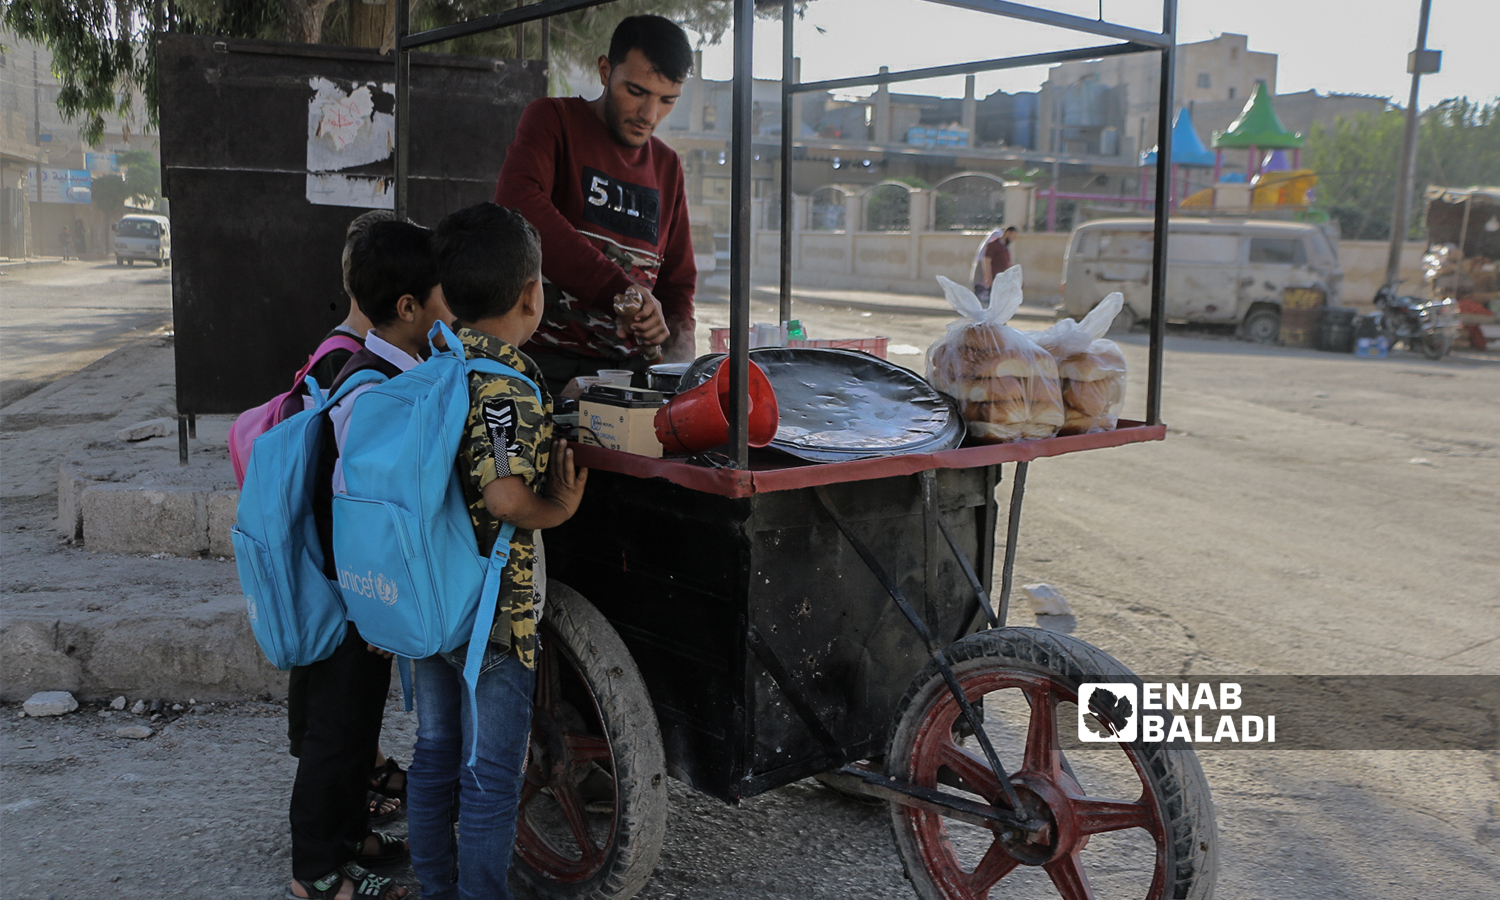 Primary school pupils having bread and salep on their way to school in the morning with the start of the new school year in the northern countryside of Aleppo- Azaz- 22 September 2021(Enab Baladi-Walid Othman)